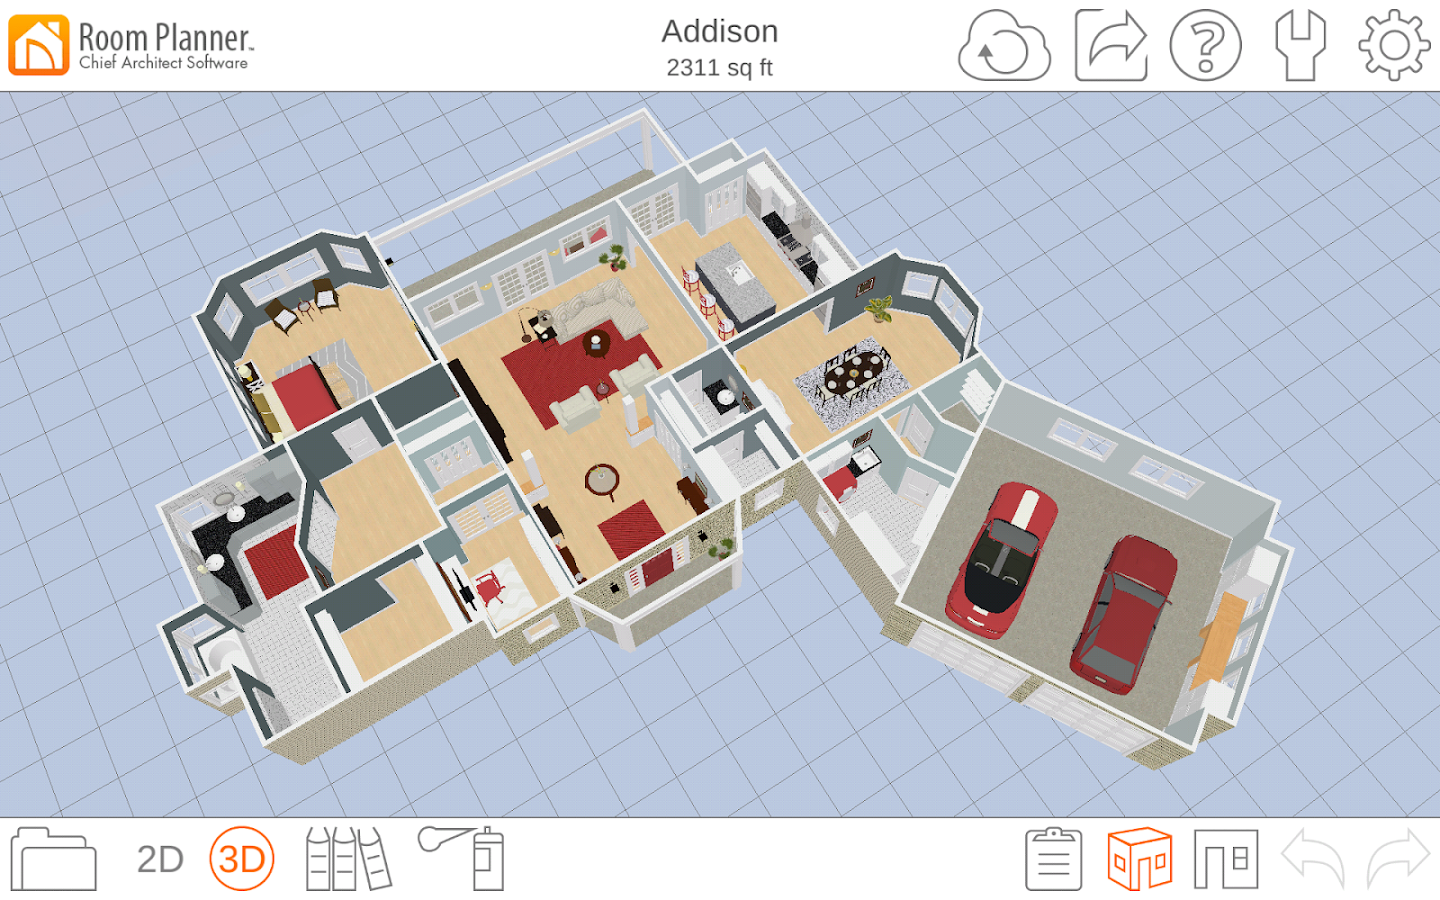 Room planner home design android apps on google play Home design android